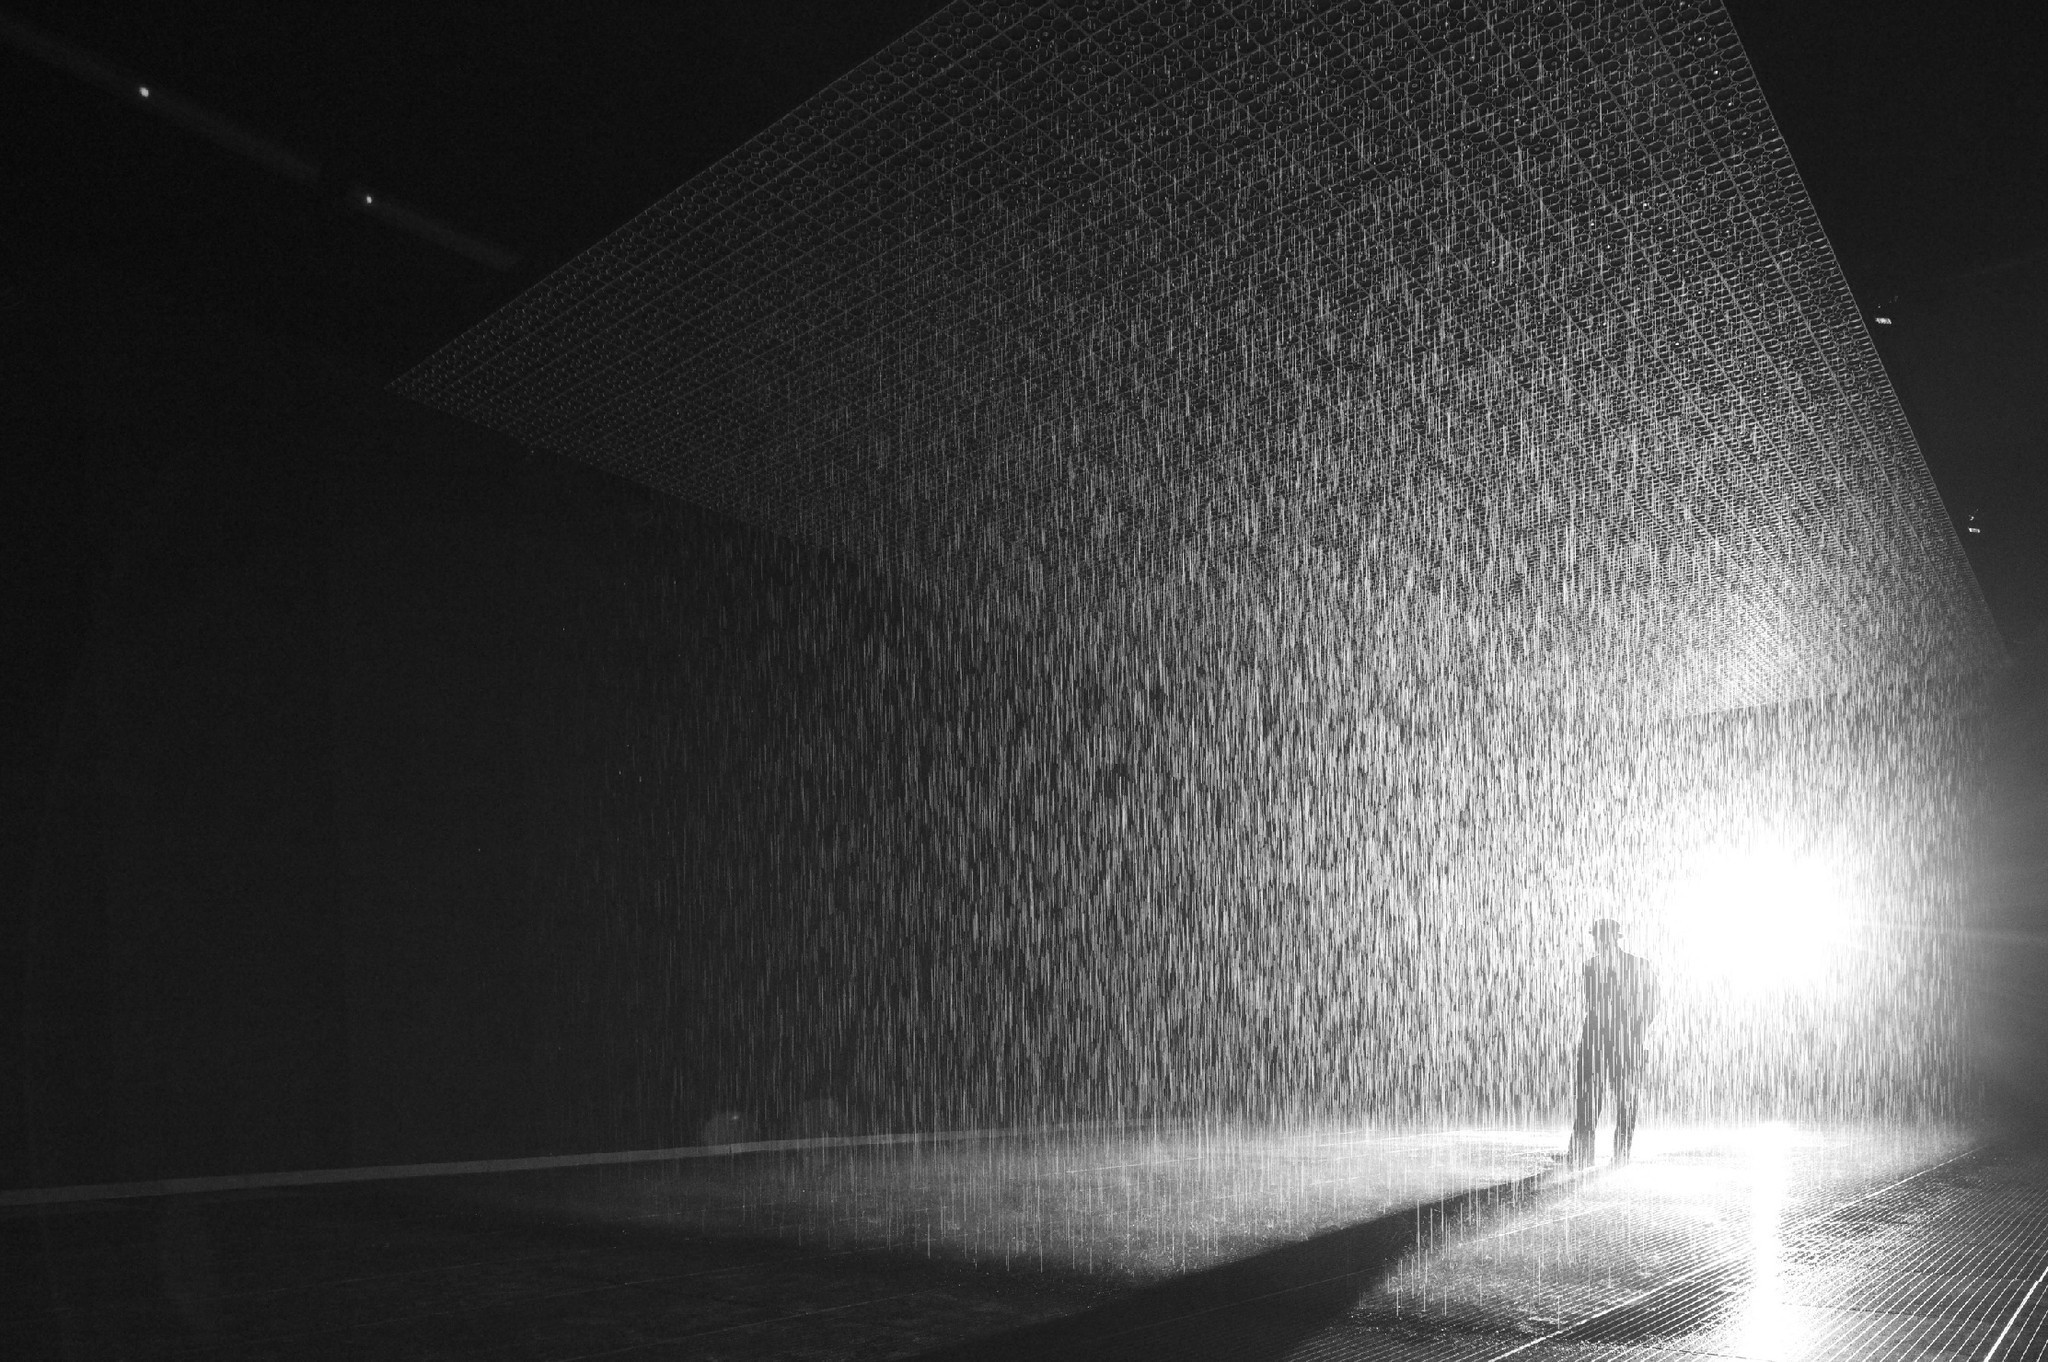 Wallpaper Falling Water Art For Instagram 3 Thoughts On Lacma S Rain Room La